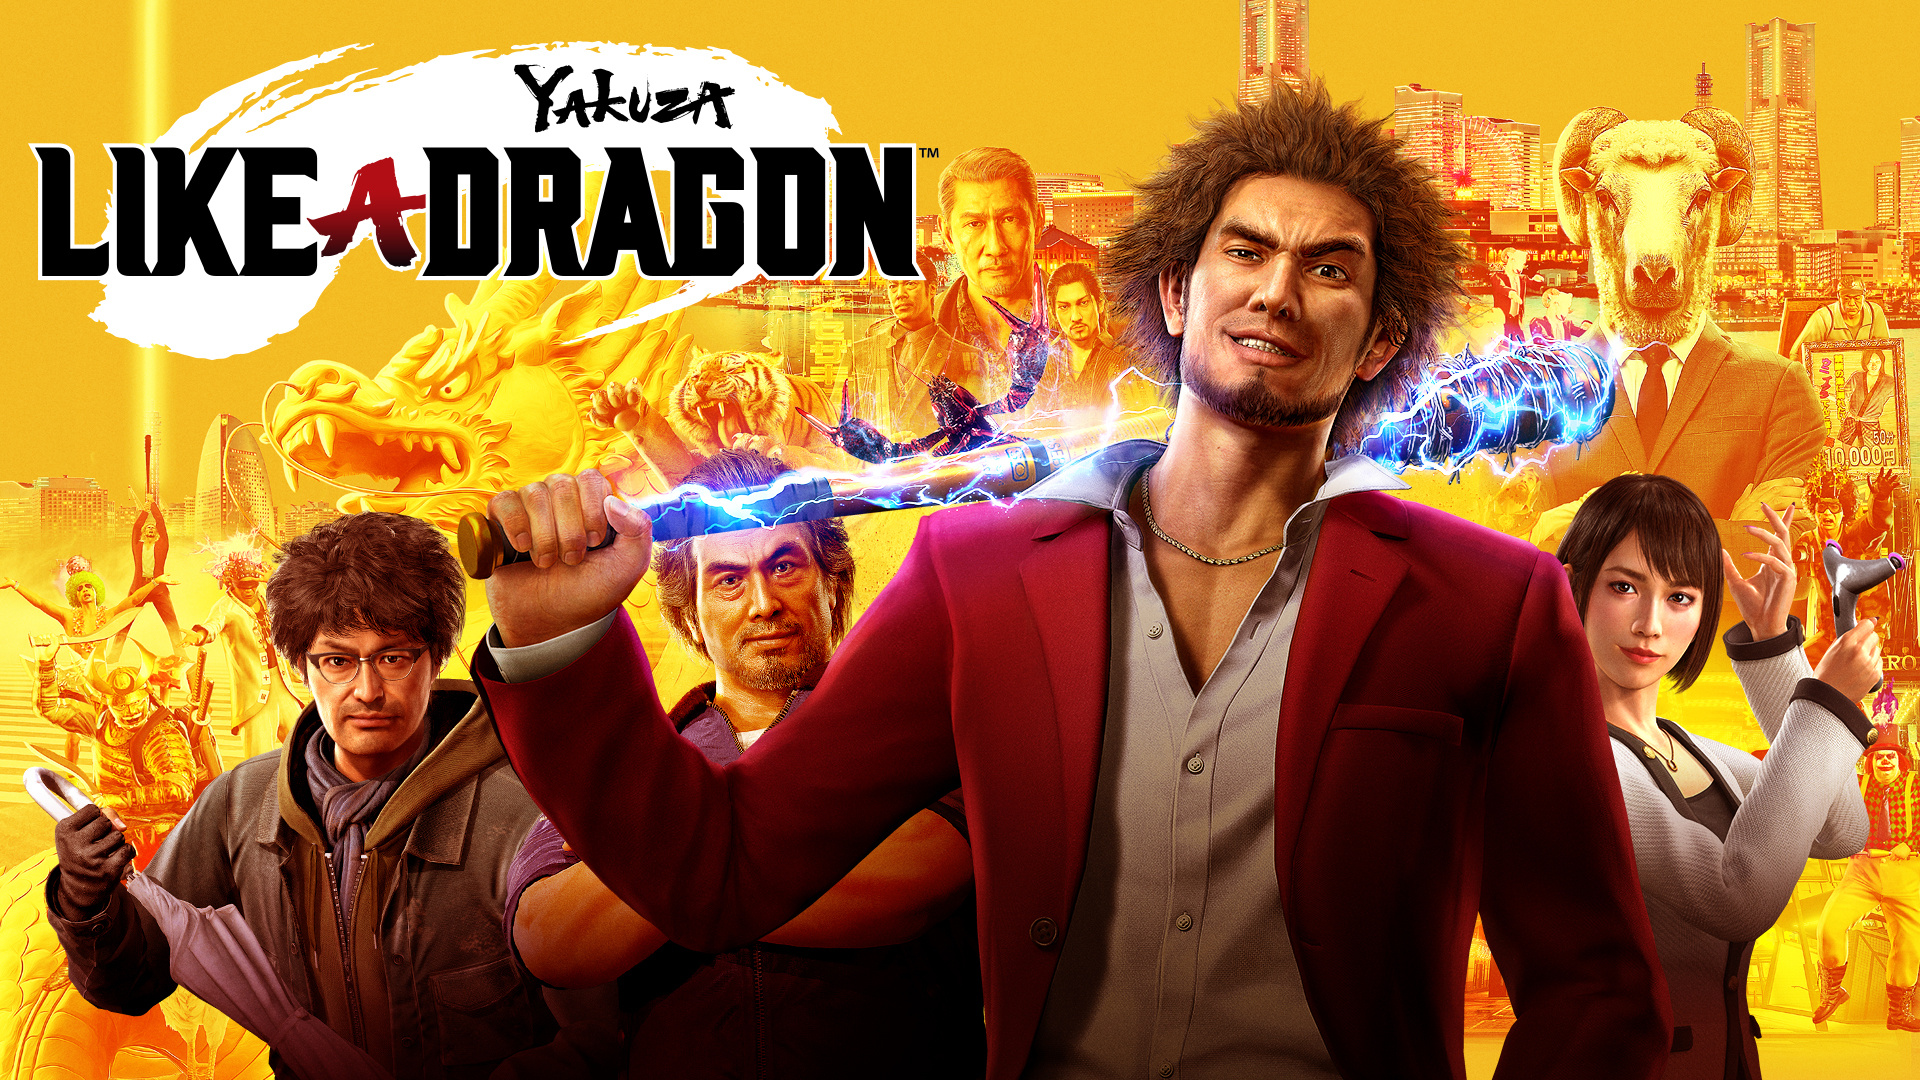 Yakuza Like A Dragon Ps5 Version Coming March 2021 Free Upgrade Confirmed Push Square